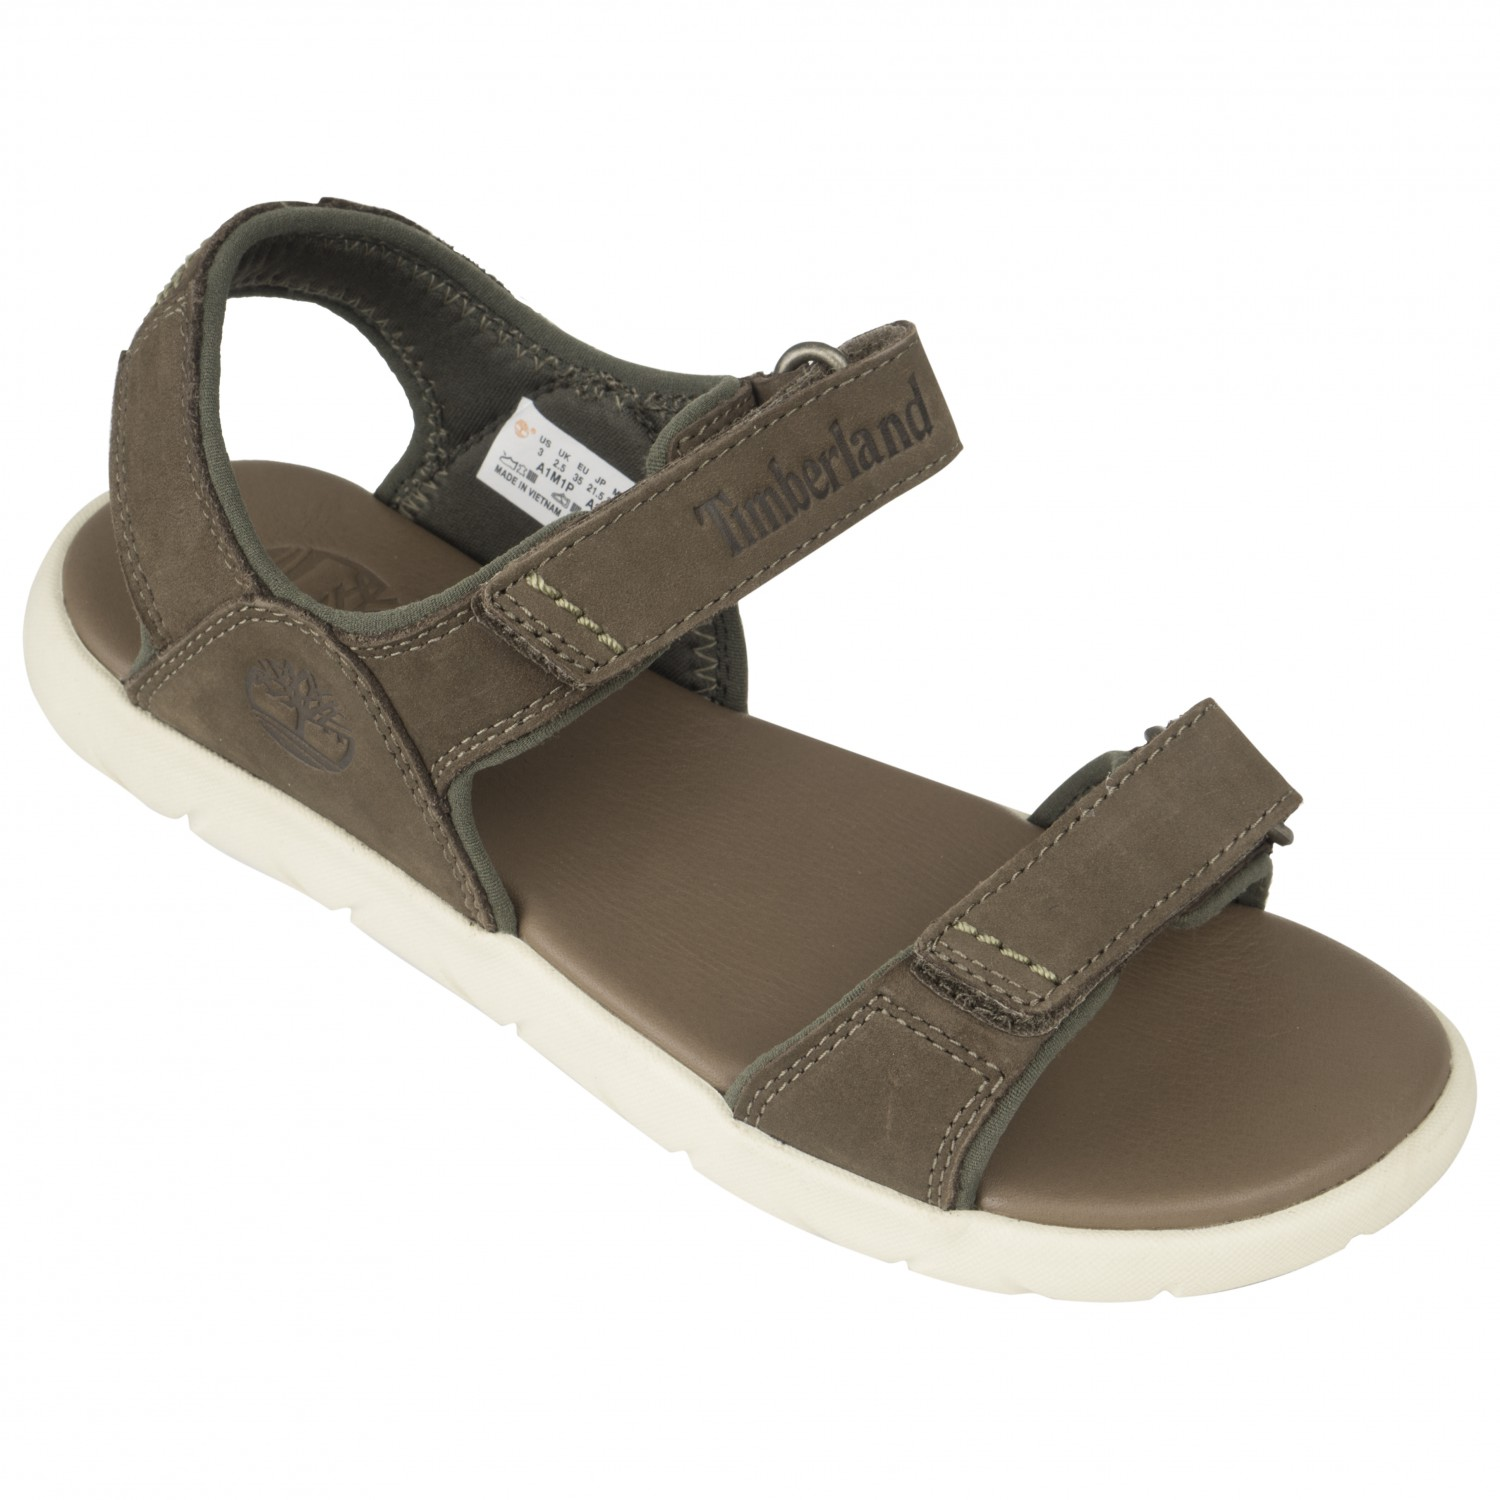 71a99eb0163 Timberland Nubble Leather 2-Strap Sandal - Sandals Kids | Buy online ...